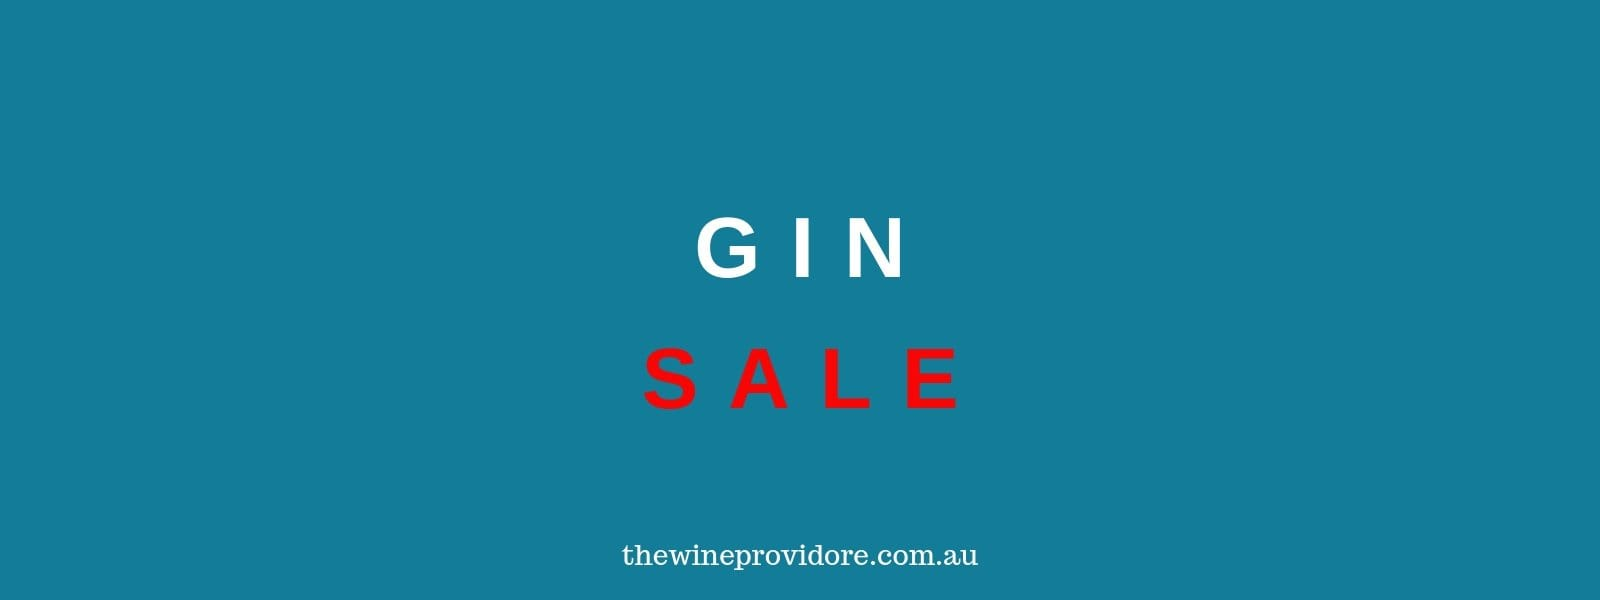 Enter the Gin Sale